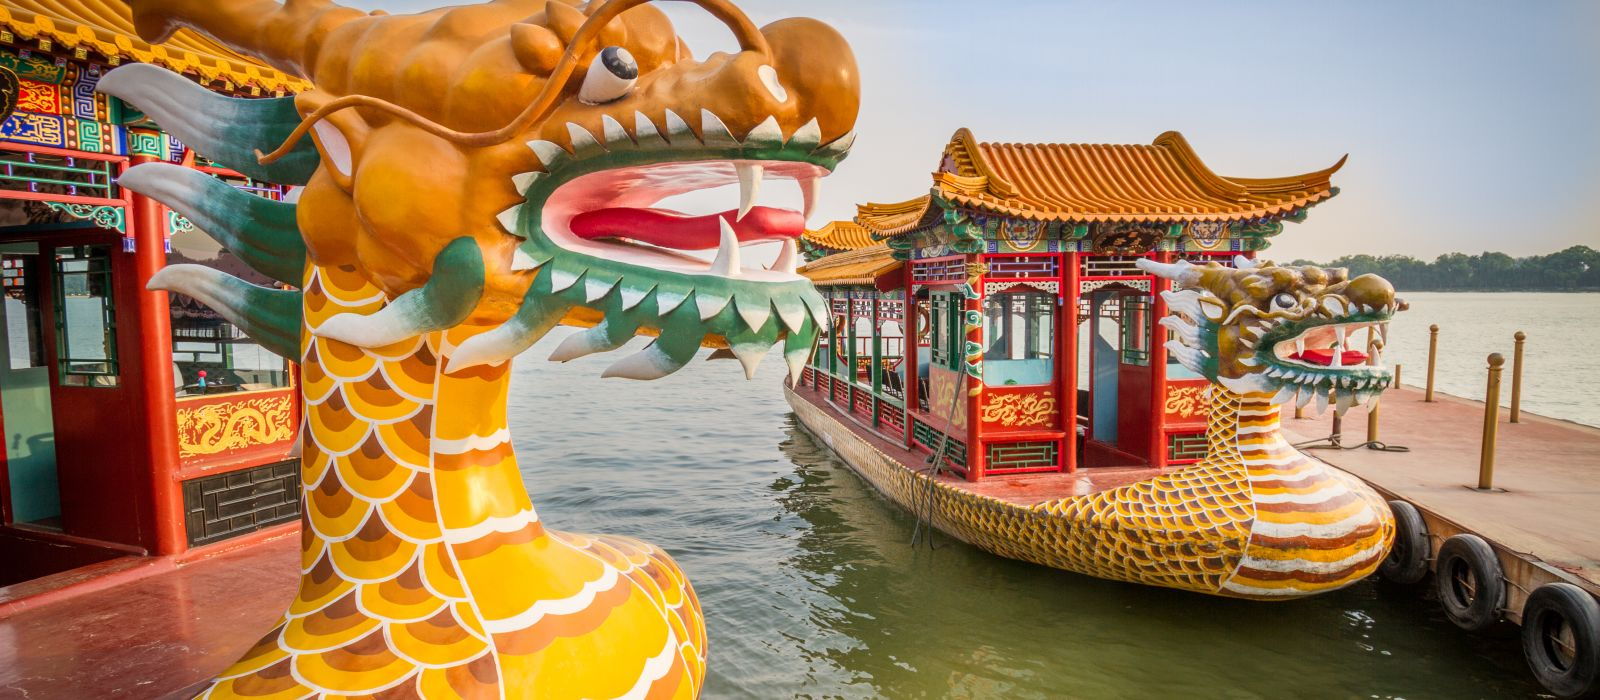 China for Families: Heritage Cities, Landscapes & Beach Tour Trip 1